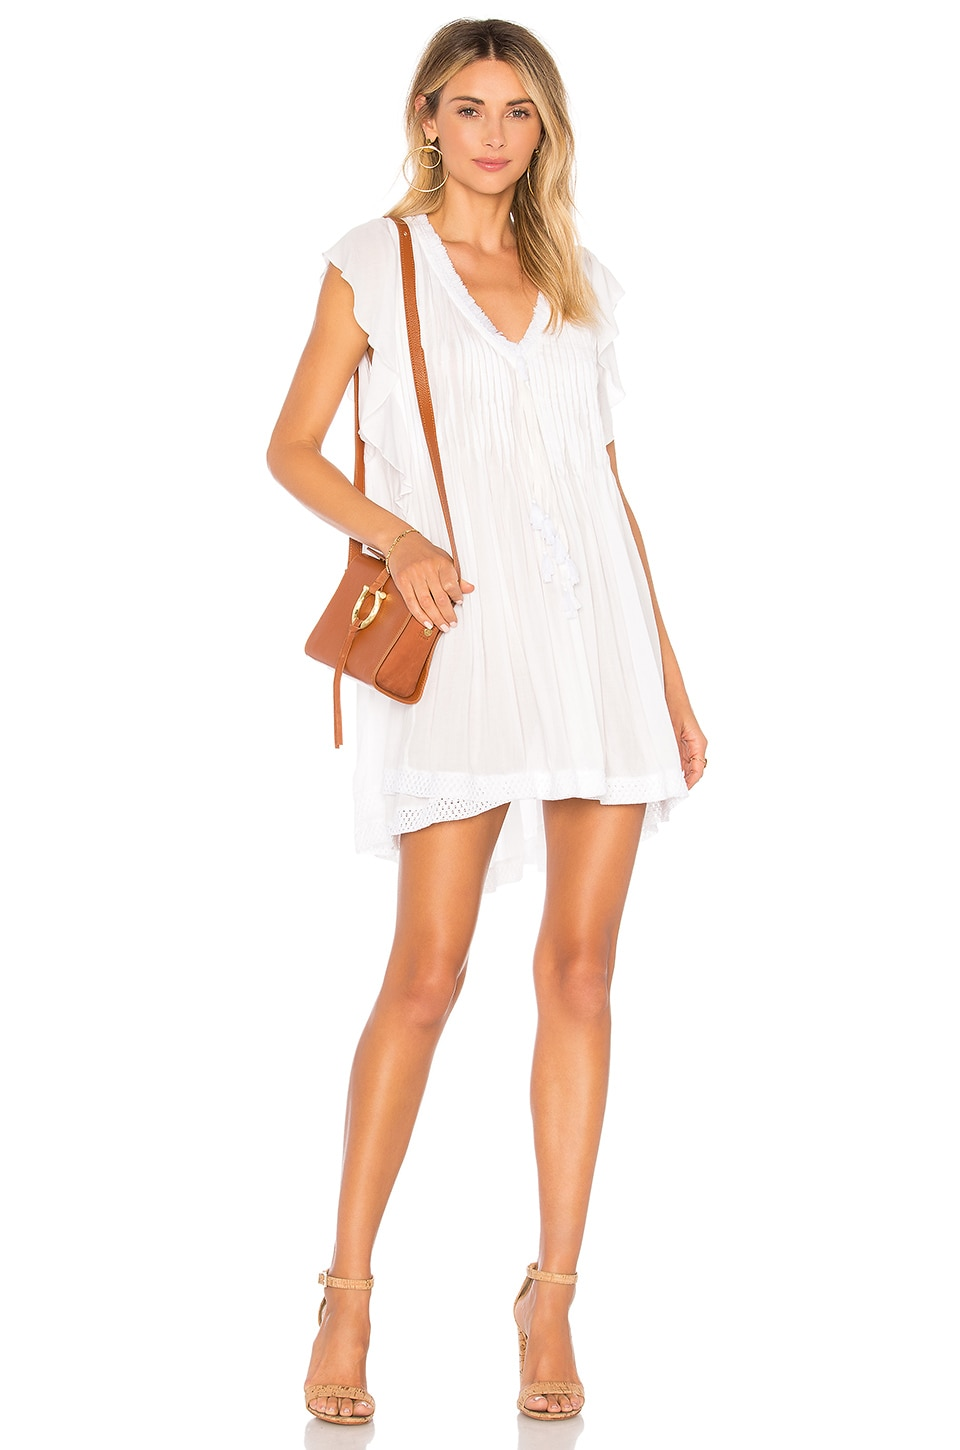 Poupette St Barth Sasha Dress in White